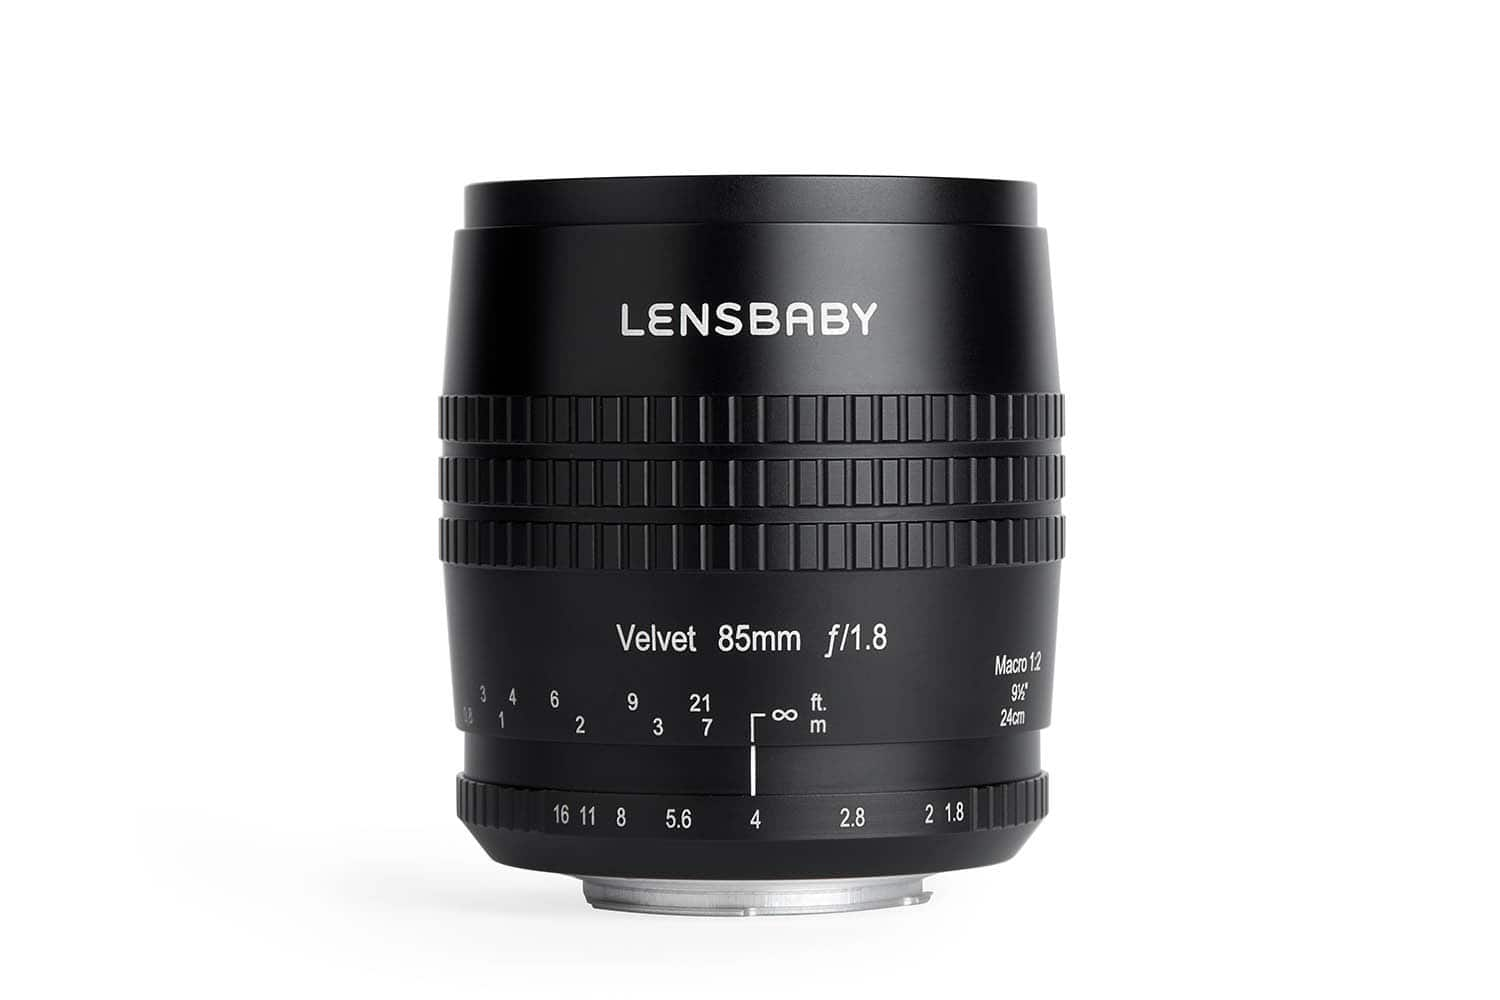 $449.95 for Lensbaby Velvet 85 Art Lens through 1/29 (free ship/no sales tax)